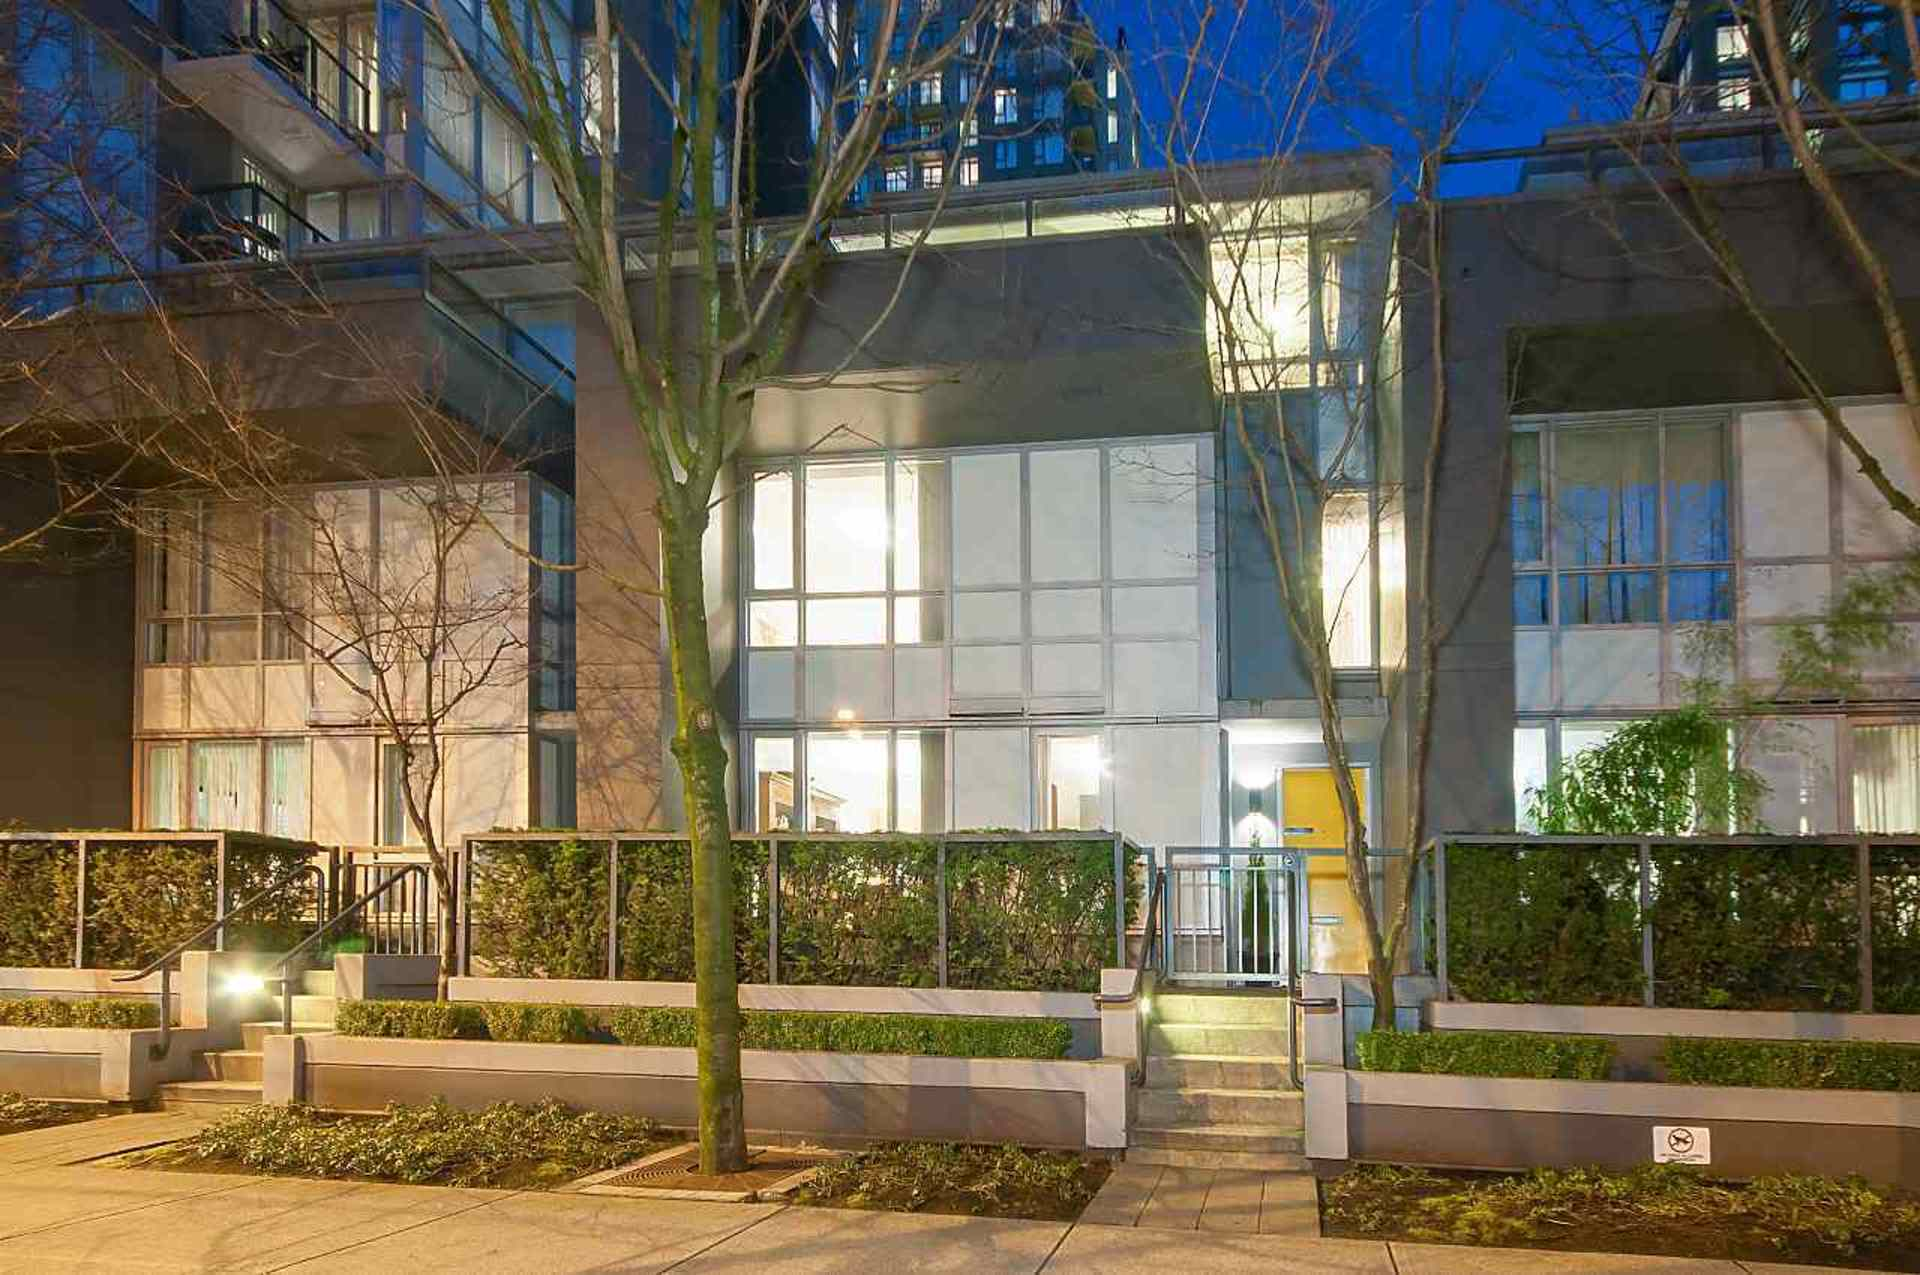 1018-richards-street-yaletown-vancouver-west-20 at 1018 Richards Street, Yaletown, Vancouver West